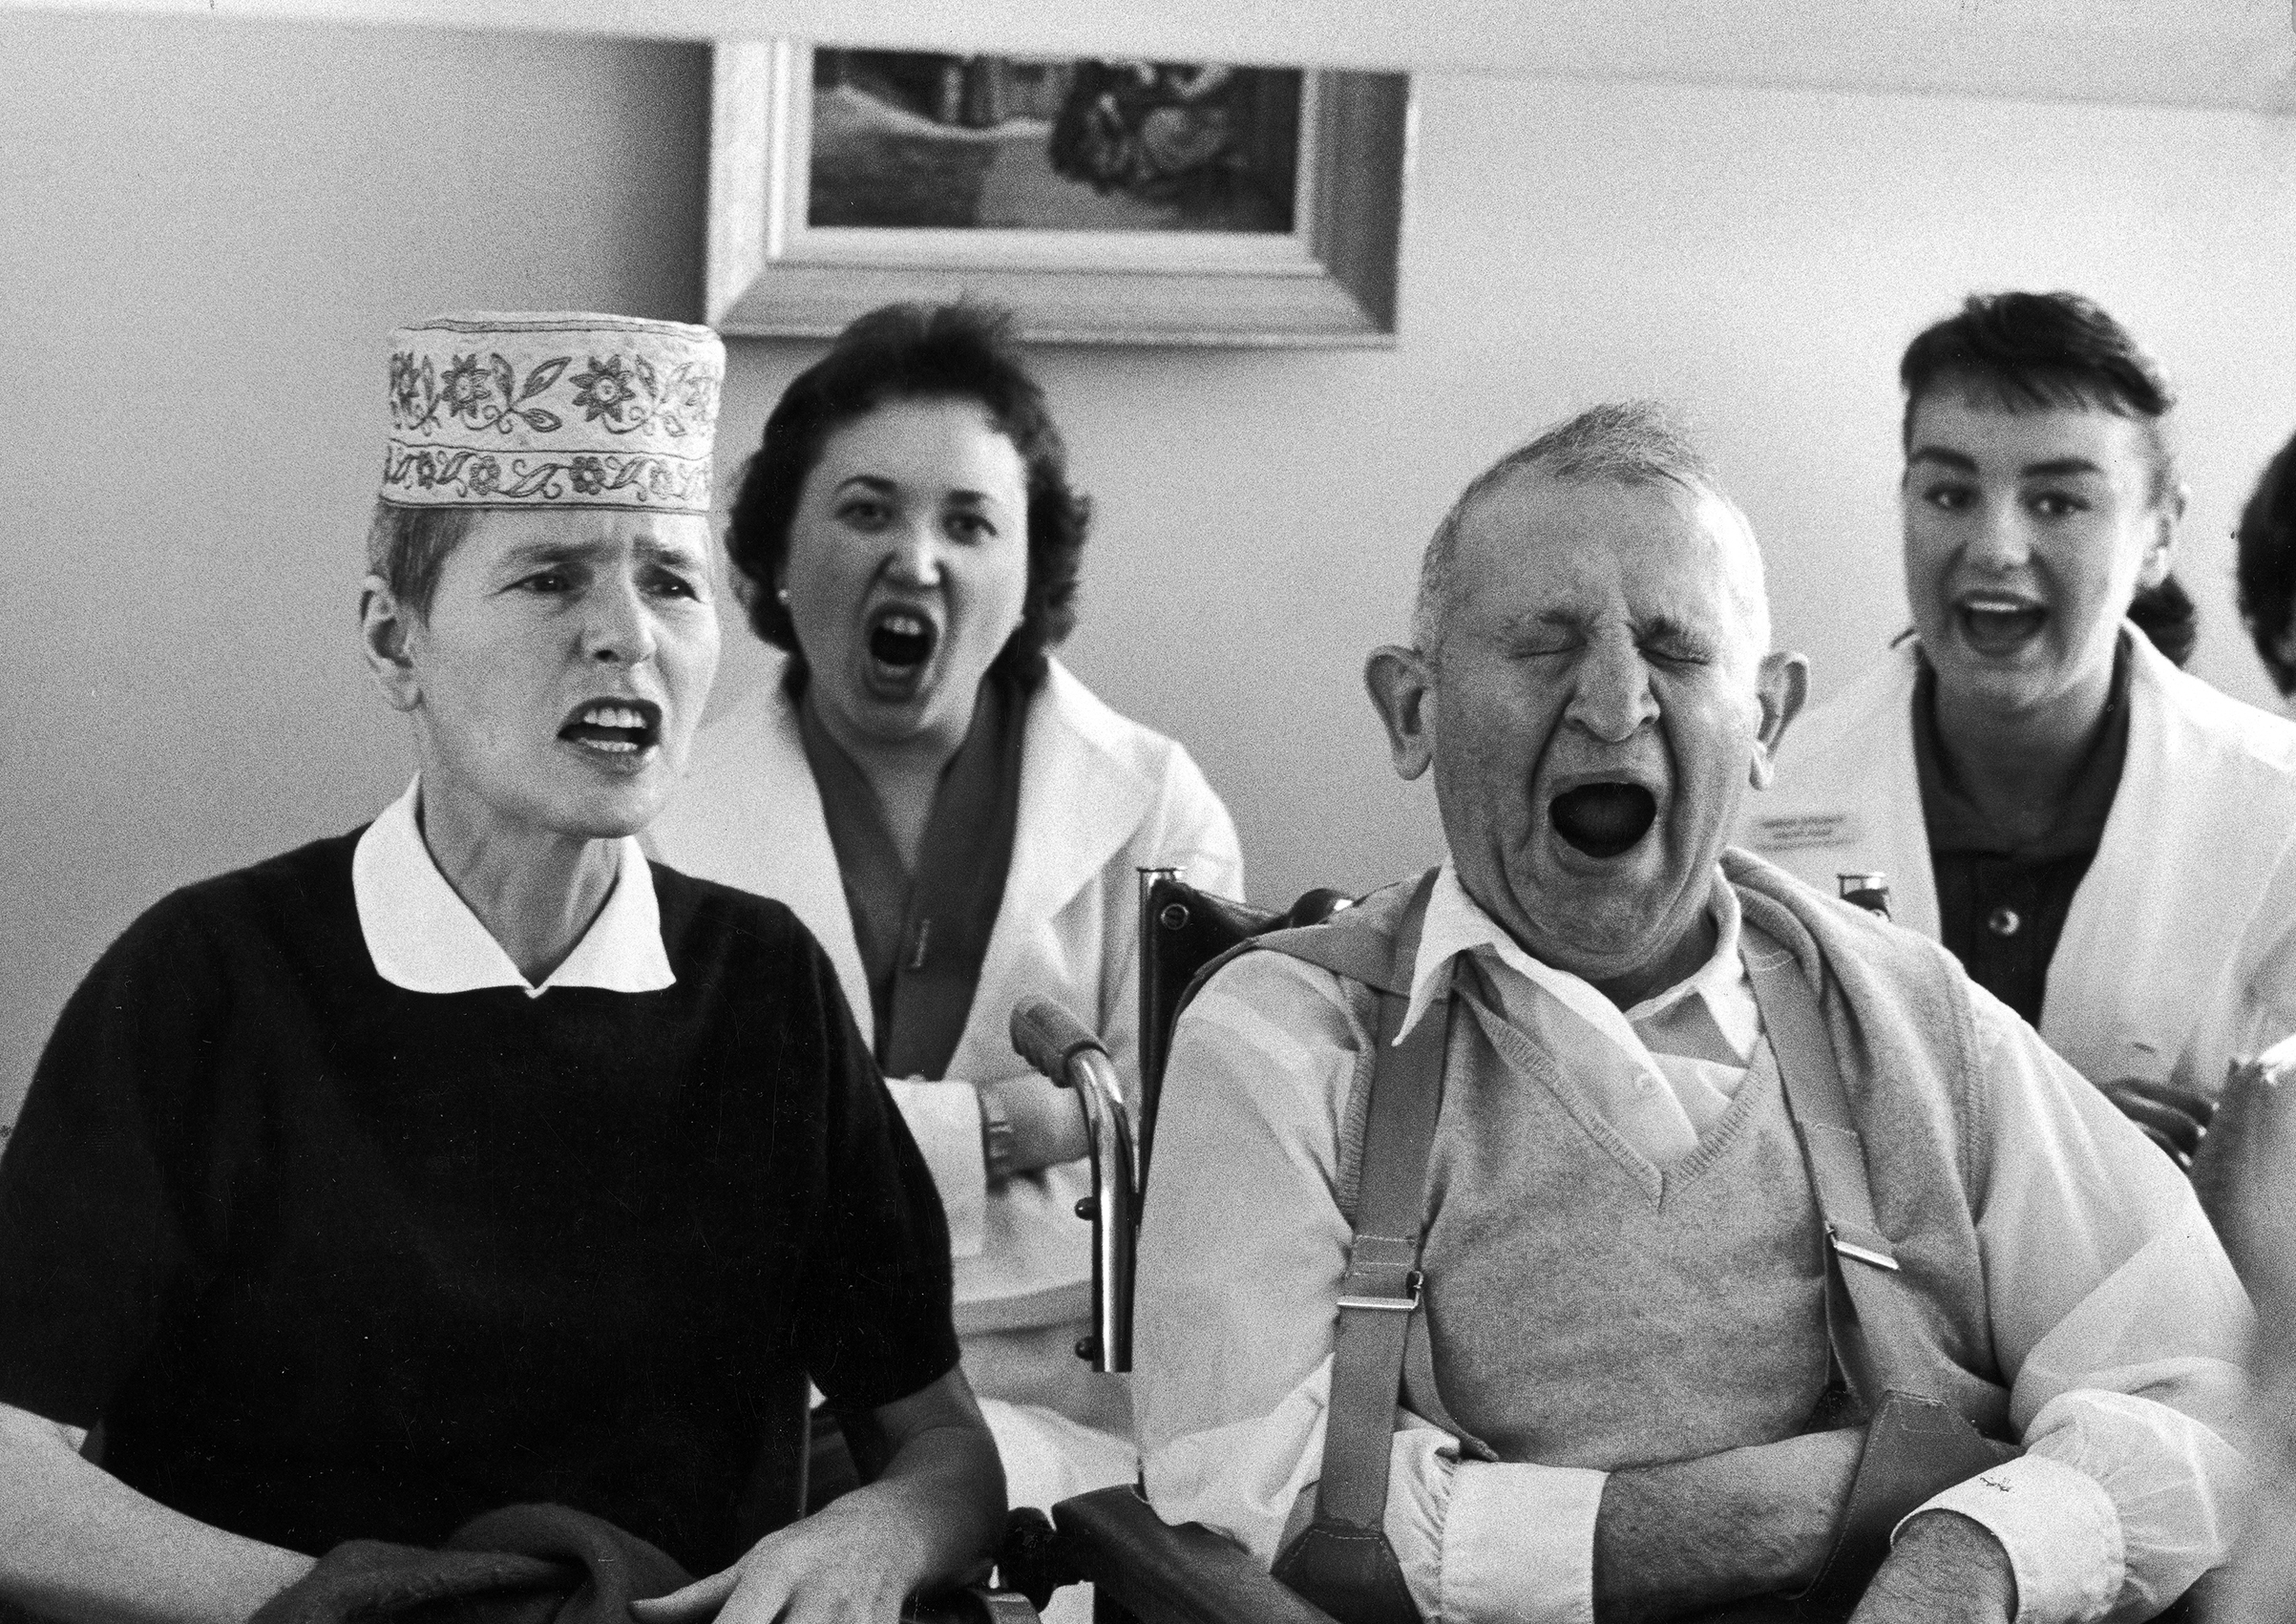 Caption from LIFE. Straining to relearn how to speak distinctly after disease had blurred and weakened her voice, the author, with another patient, is taught by therapists (rear) to exaggerate lip movements.